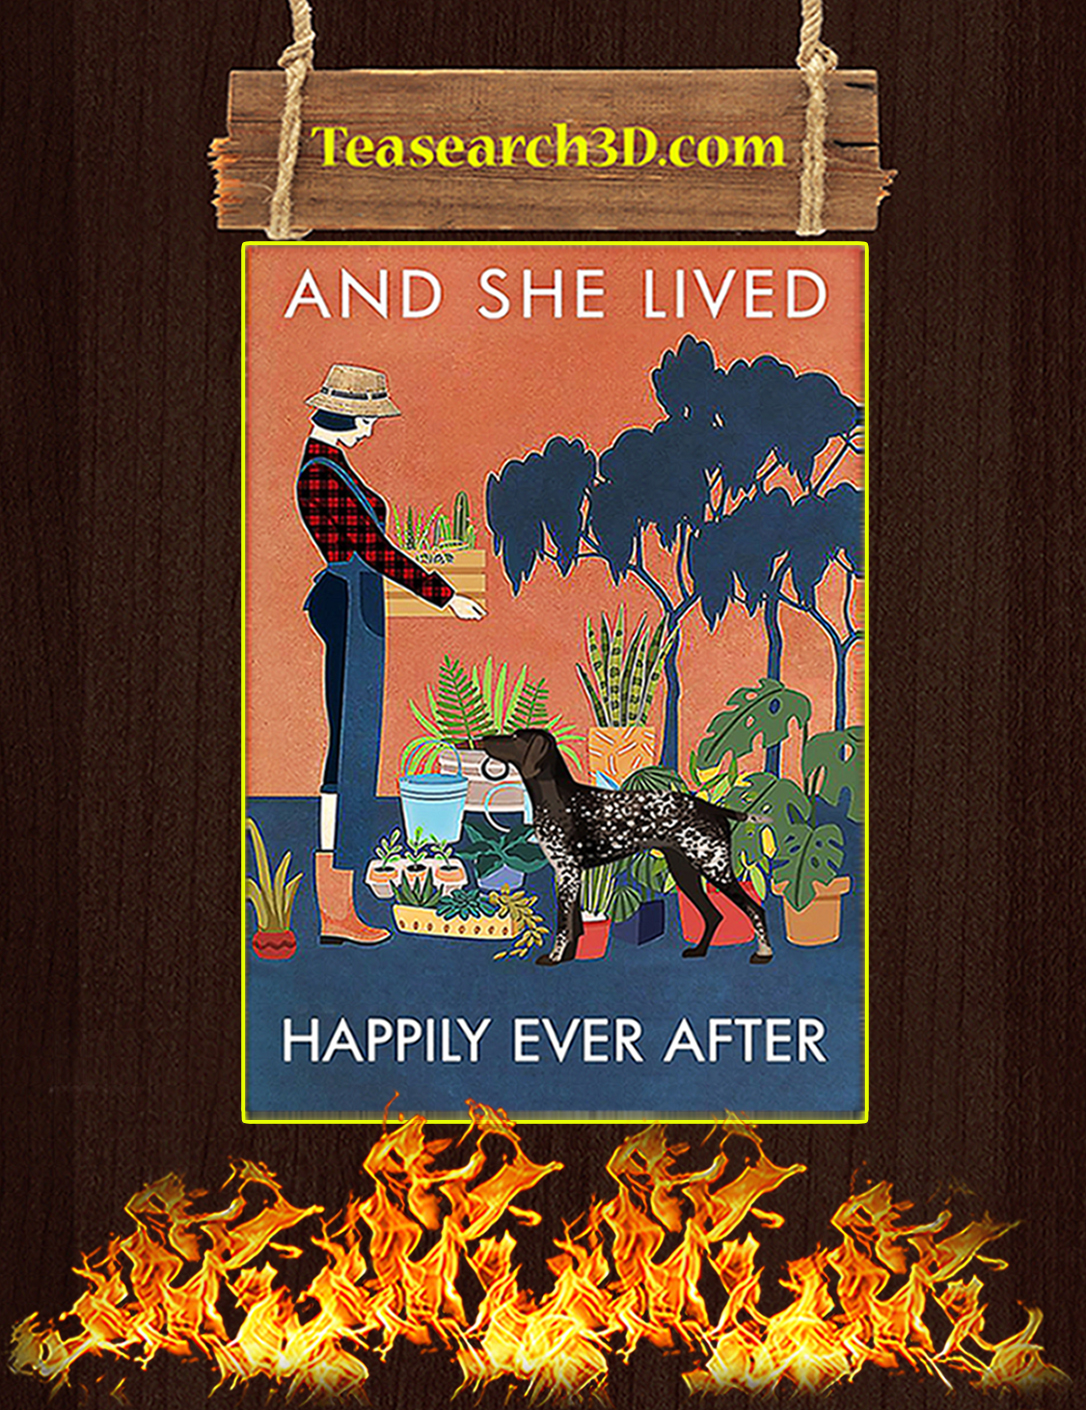 German Shorthaired Pointer And she lived happily ever after poster A2